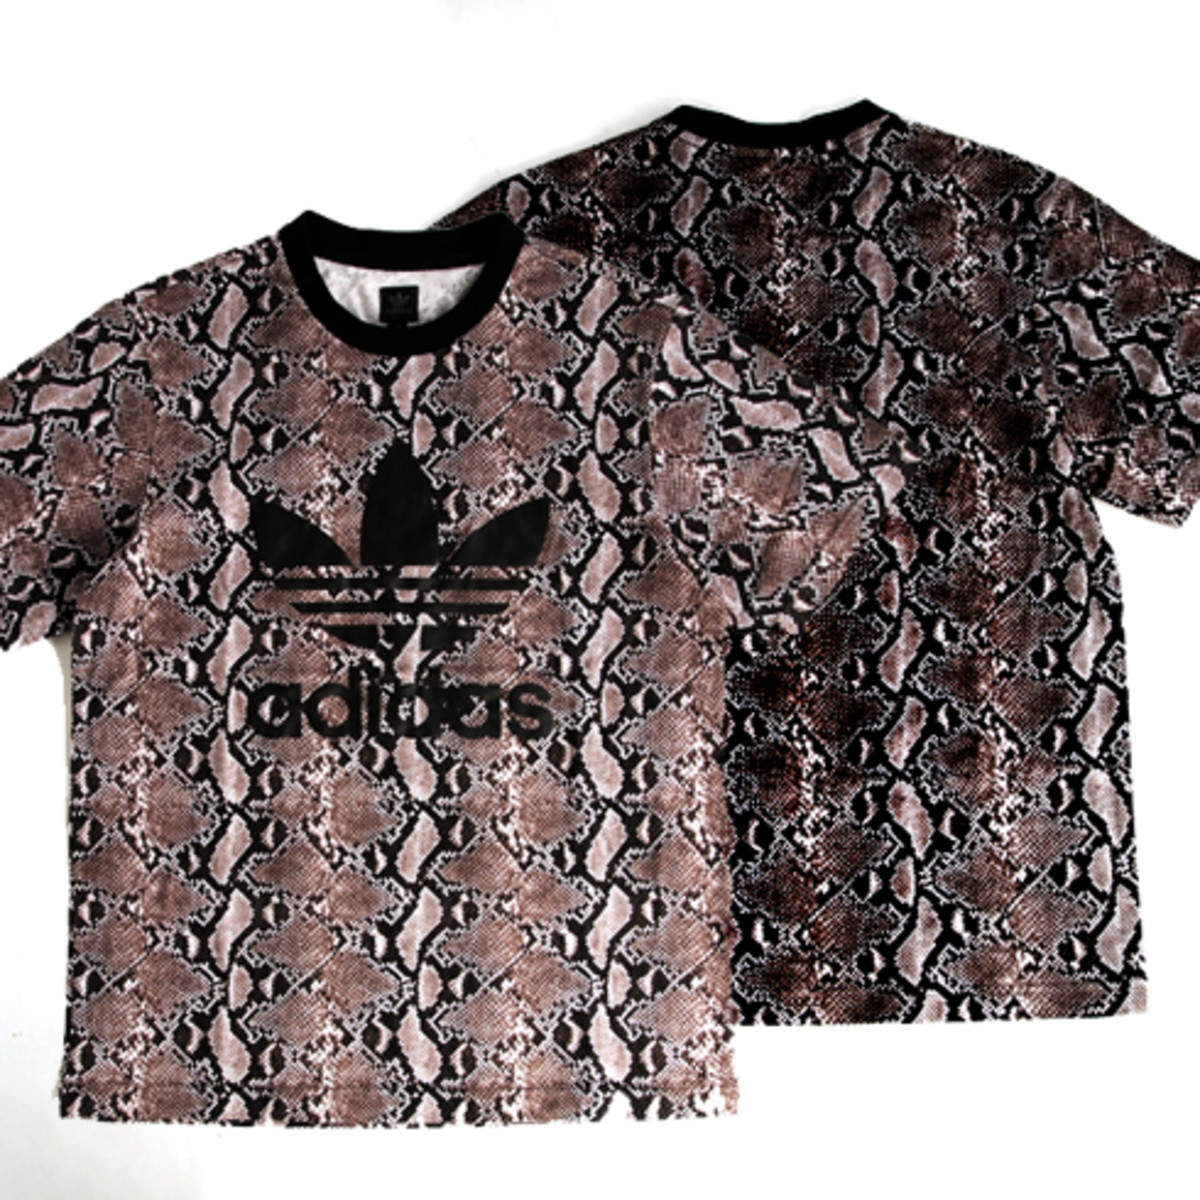 adidas-originals-animal-collection-10